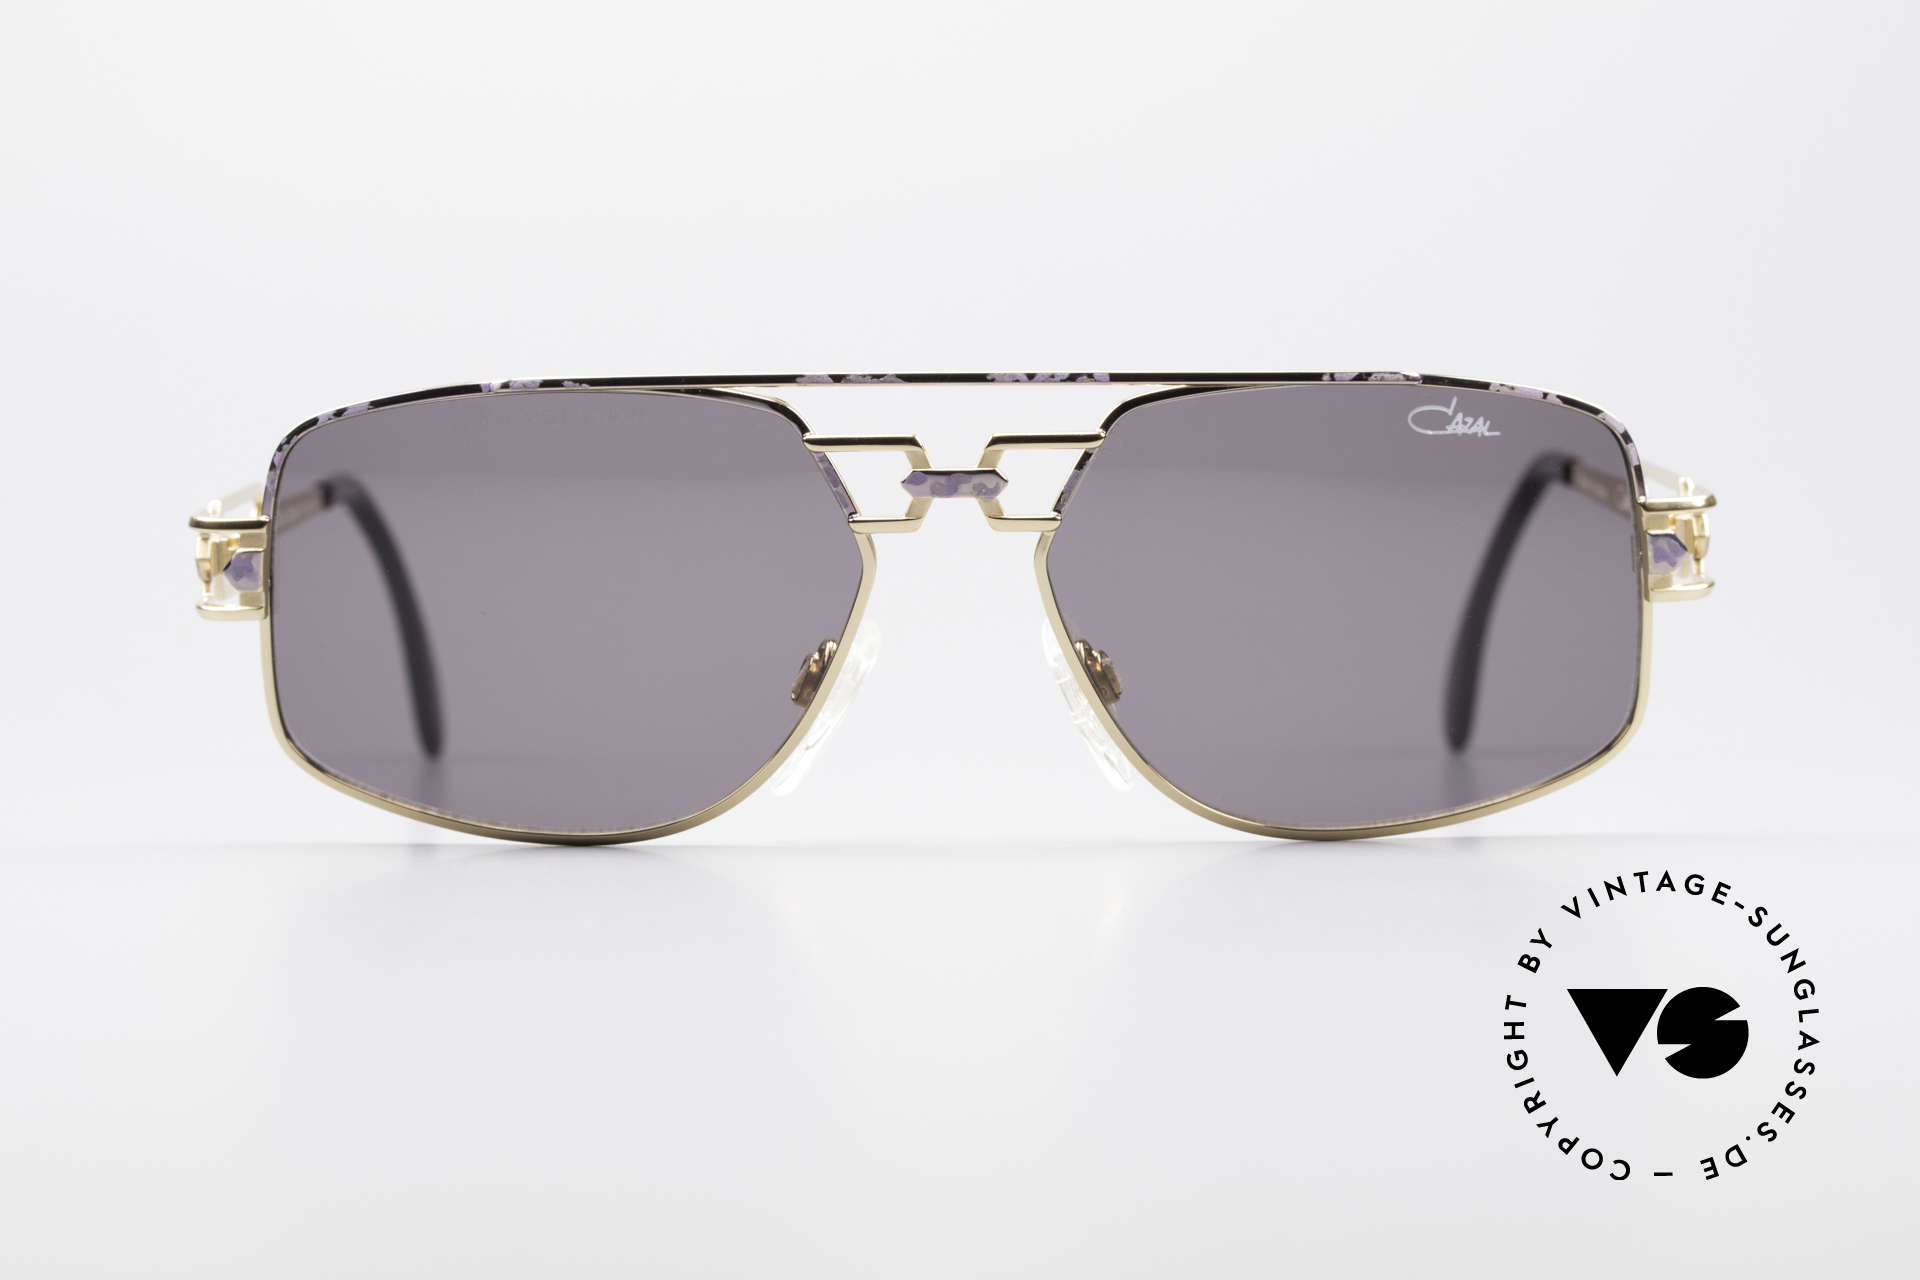 Cazal 972 True Vintage Shades No Retro, high-end quality 'made in GERMANY' (crafted in Passau), Made for Men and Women